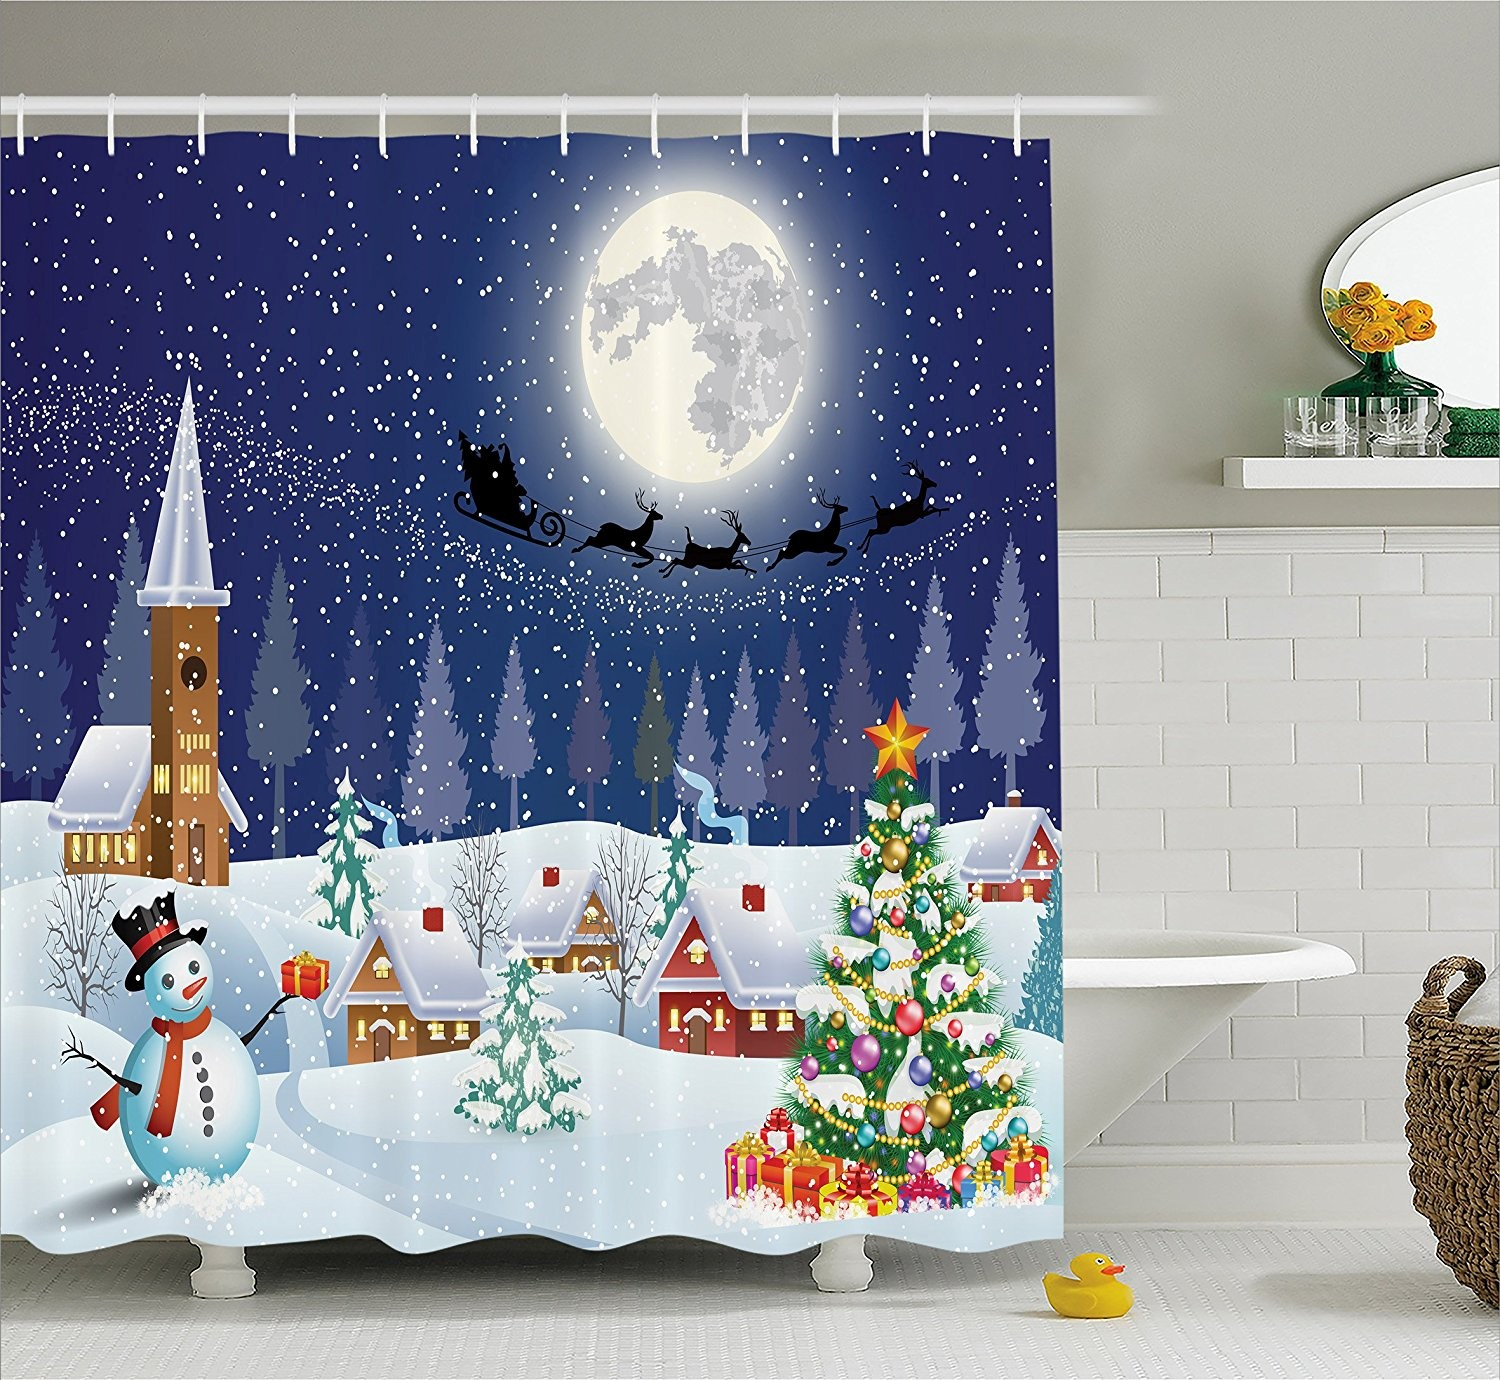 Christmas Bathroom Sets Best Amazon Christmas Shower Curtain Snowman Christmas Bathroom Model